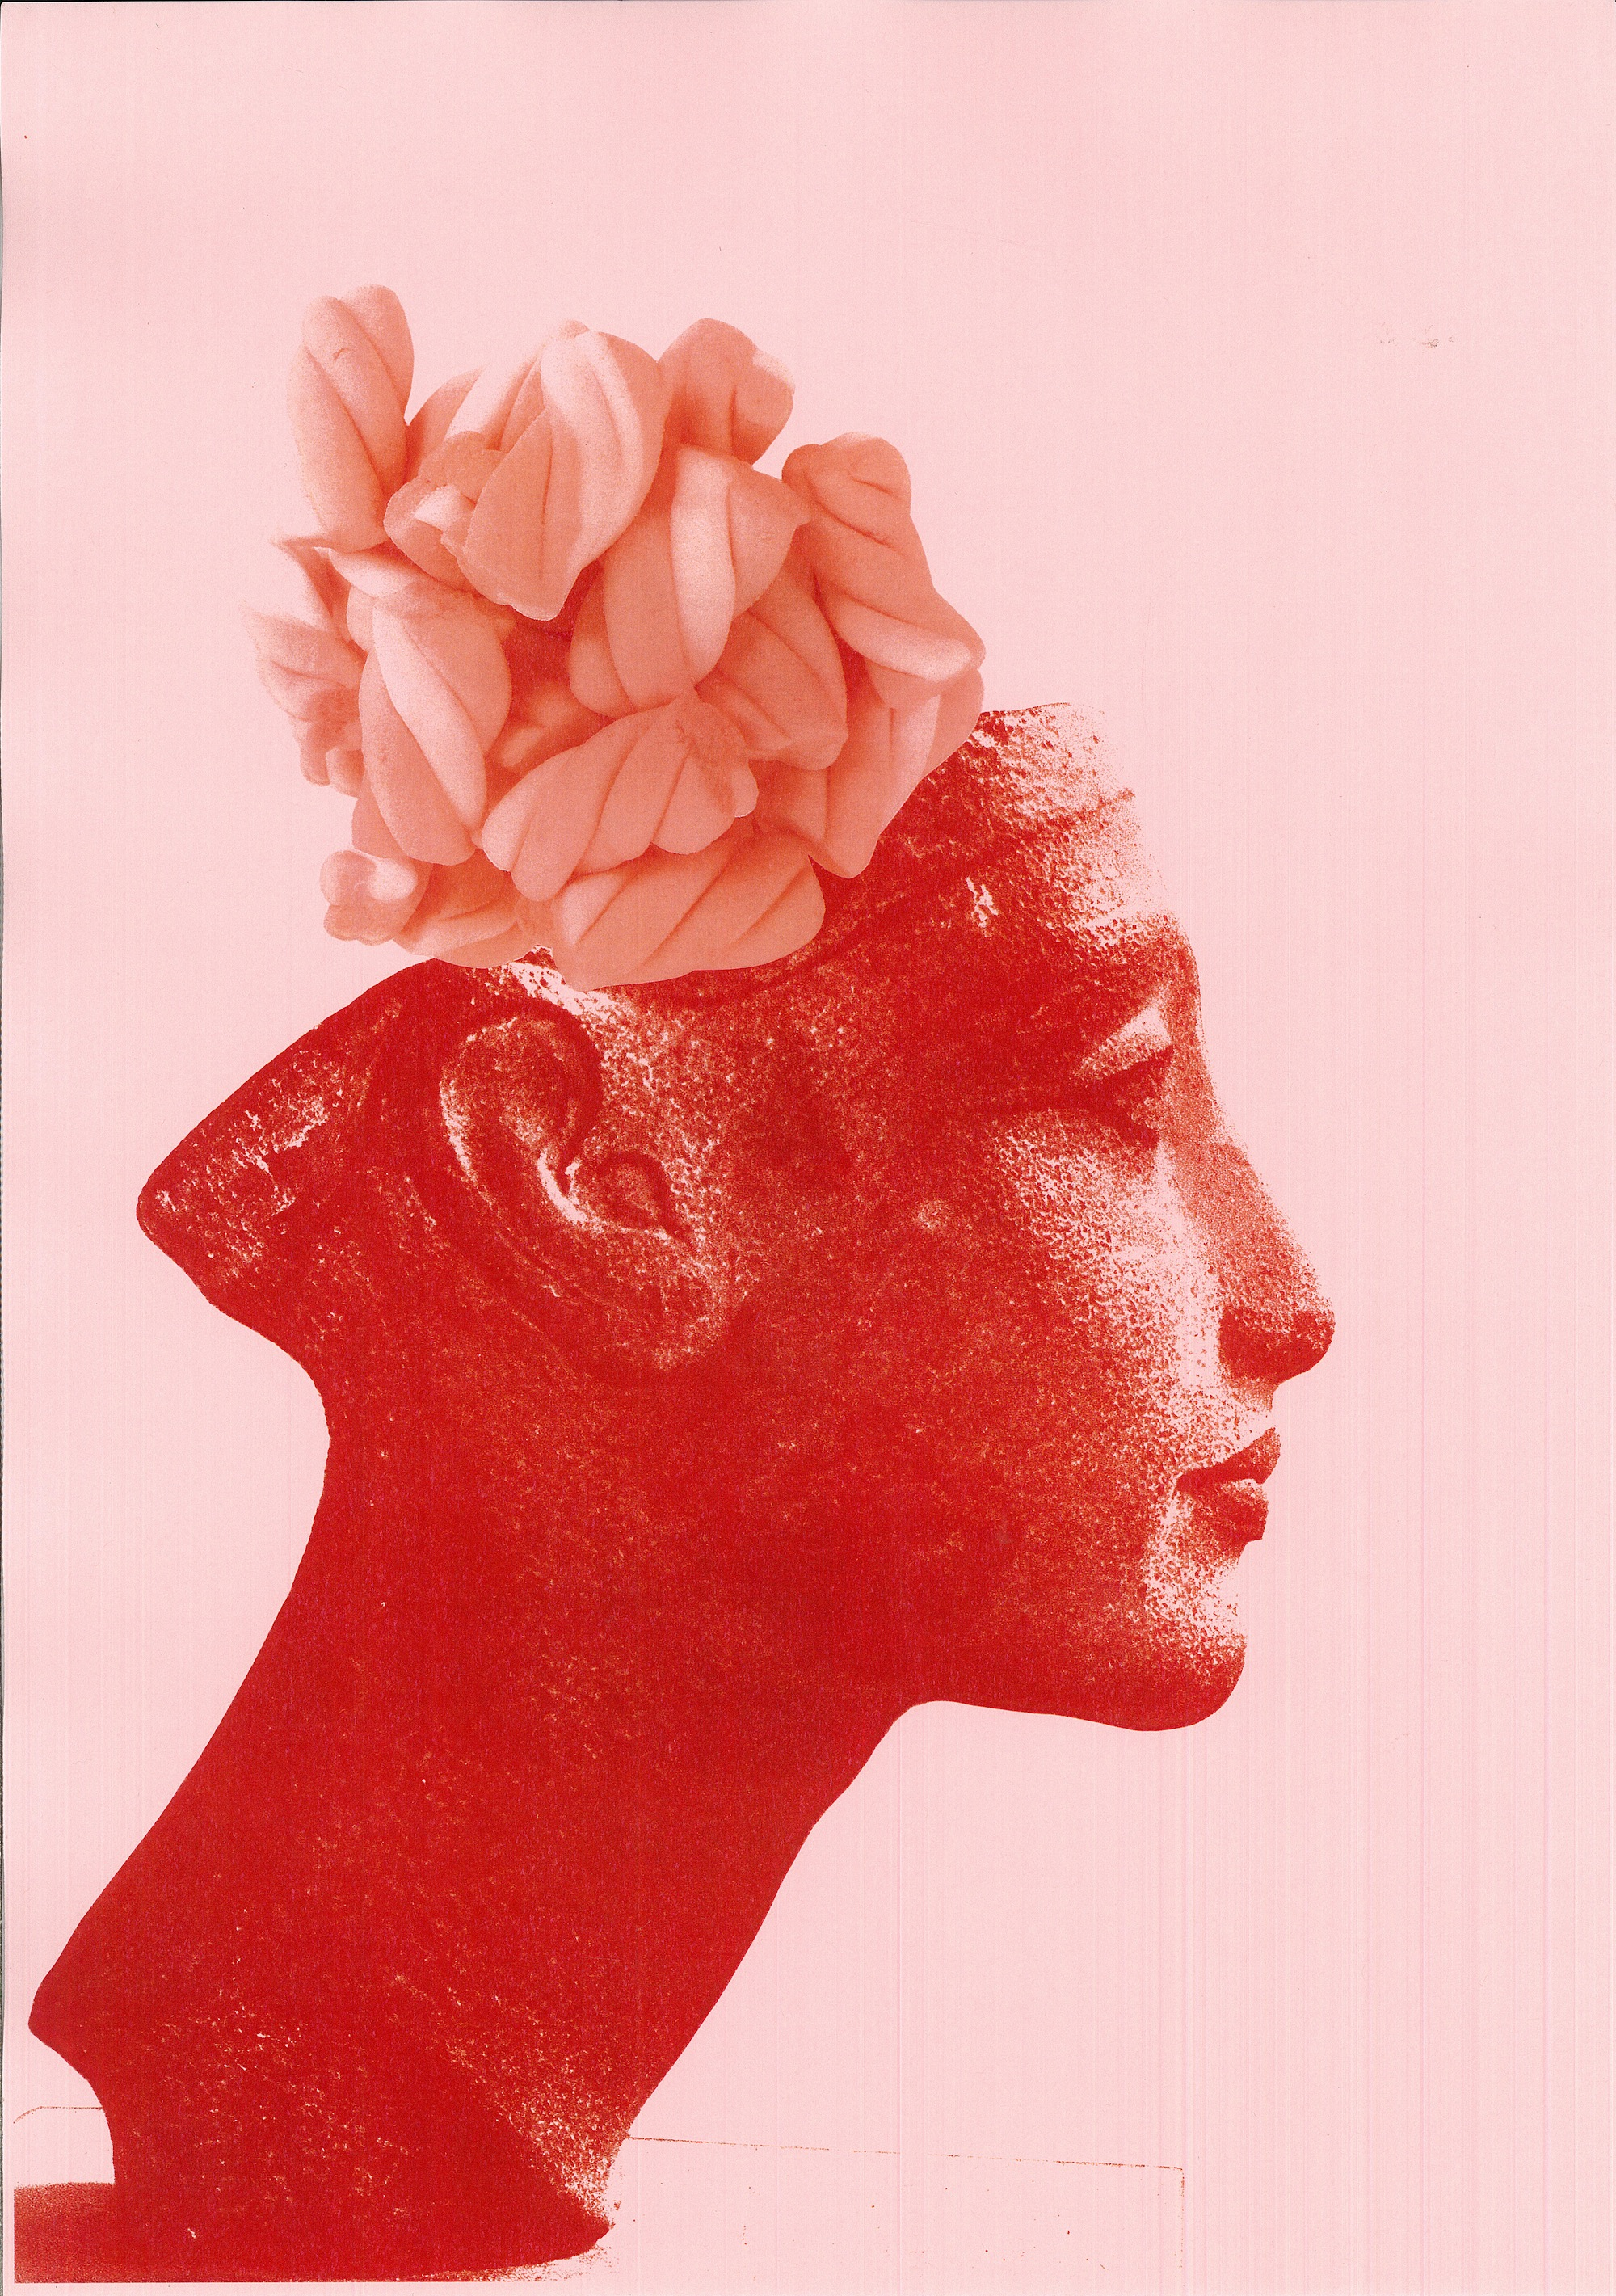 (Nefertiti Crowned with Flumps) In Ecstasy       - red on pink photocopy of Nefertiti statue crowned with flump sweets, printed on self-adhesive film, 2014